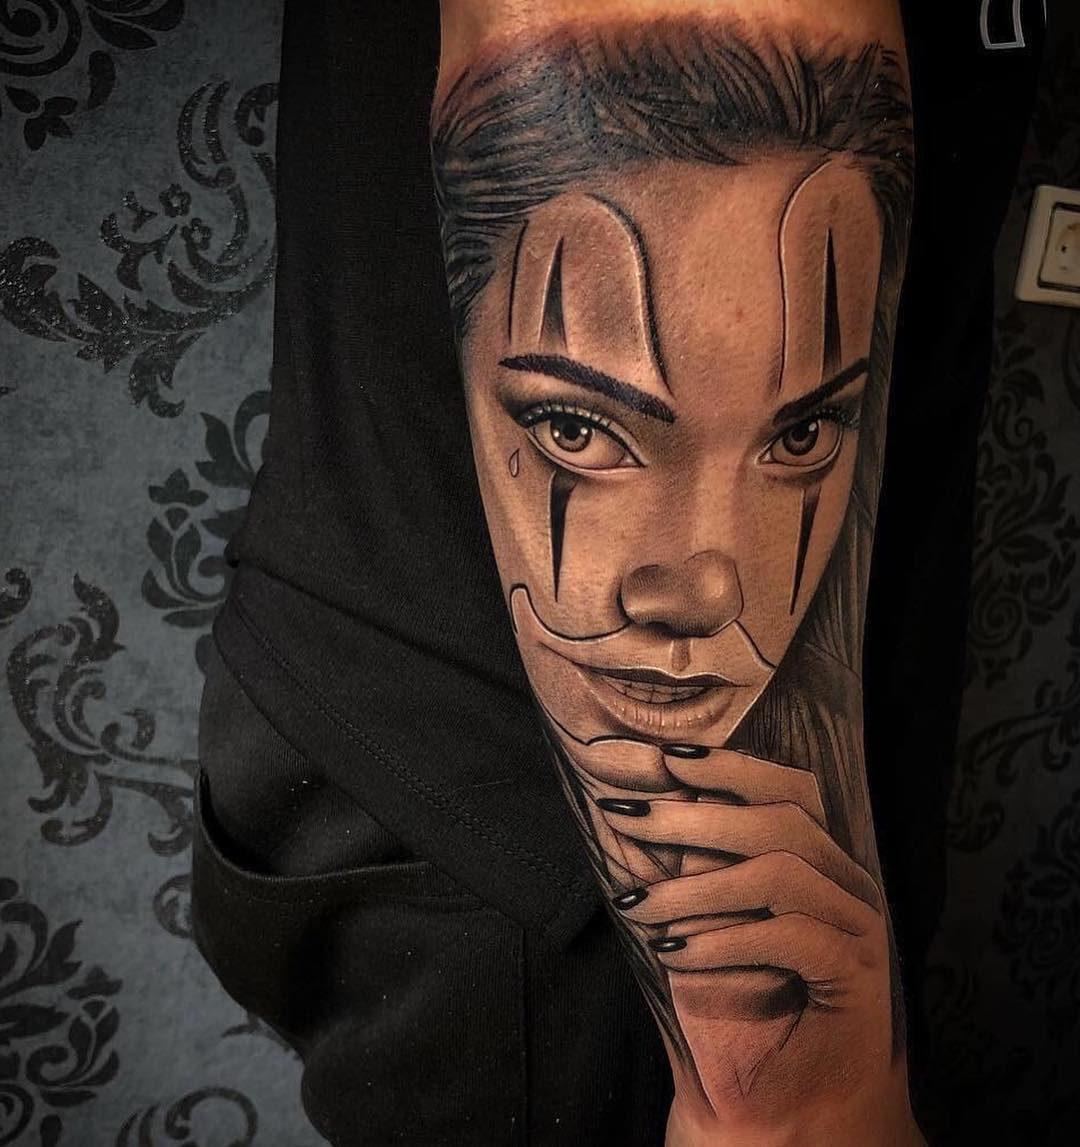 The face of the girl performed by the finished tattoo